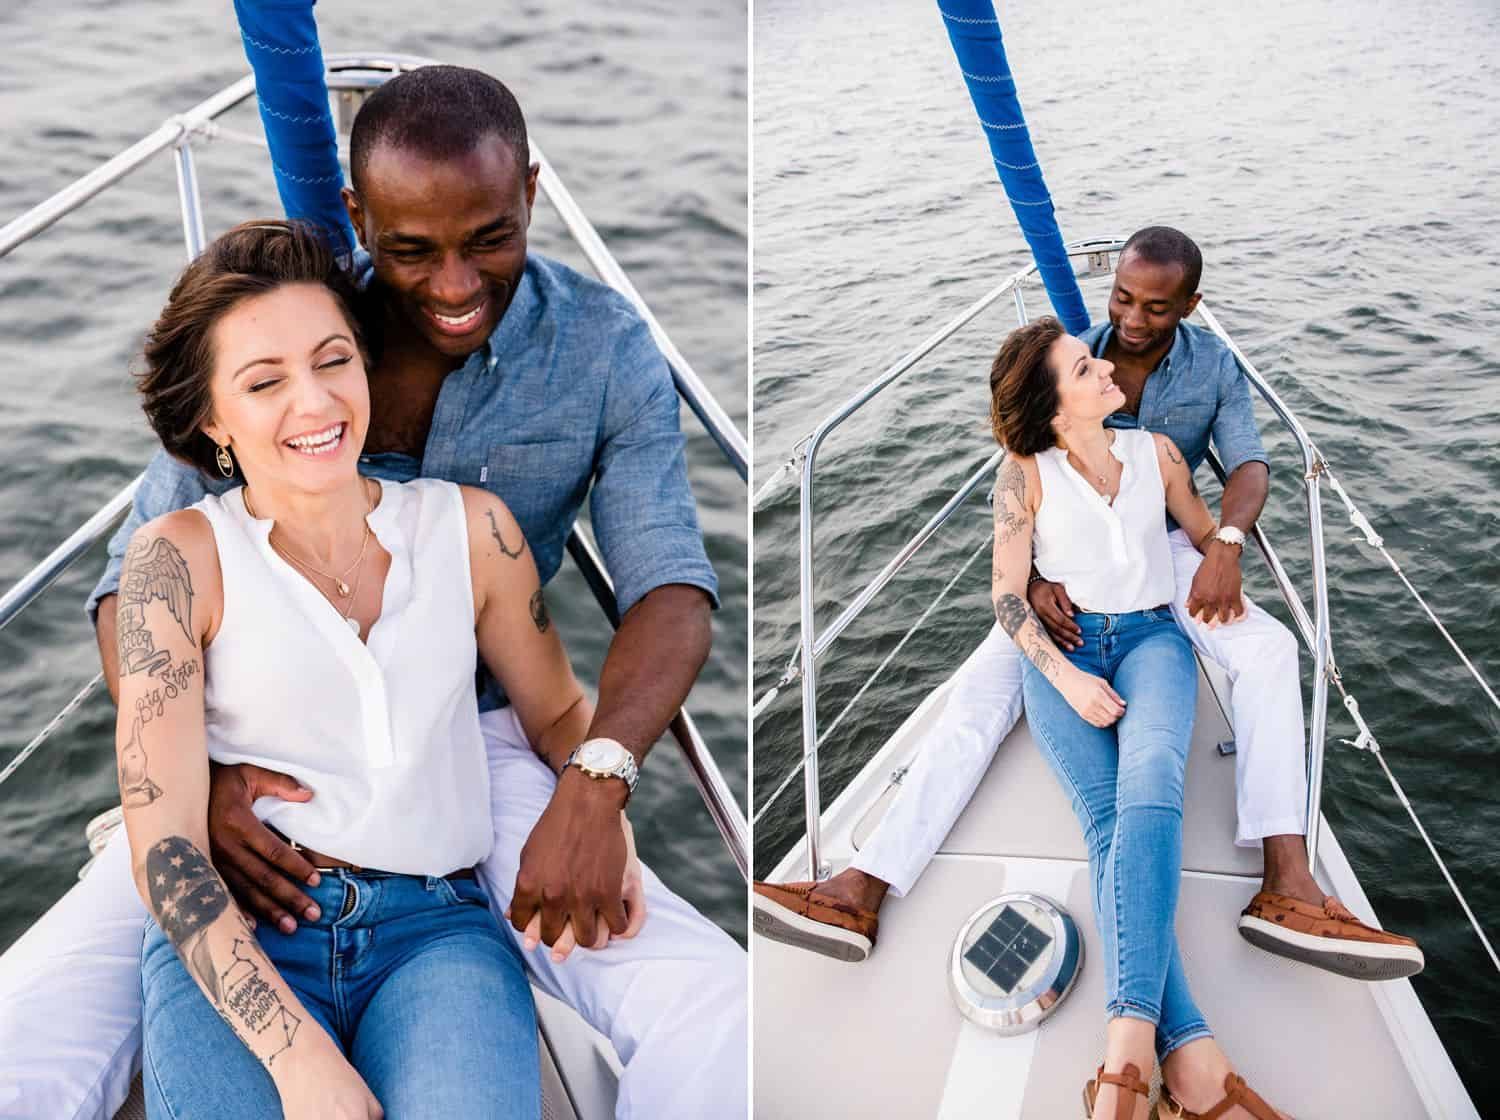 Portraits of a Black man and a White woman on a sailboat